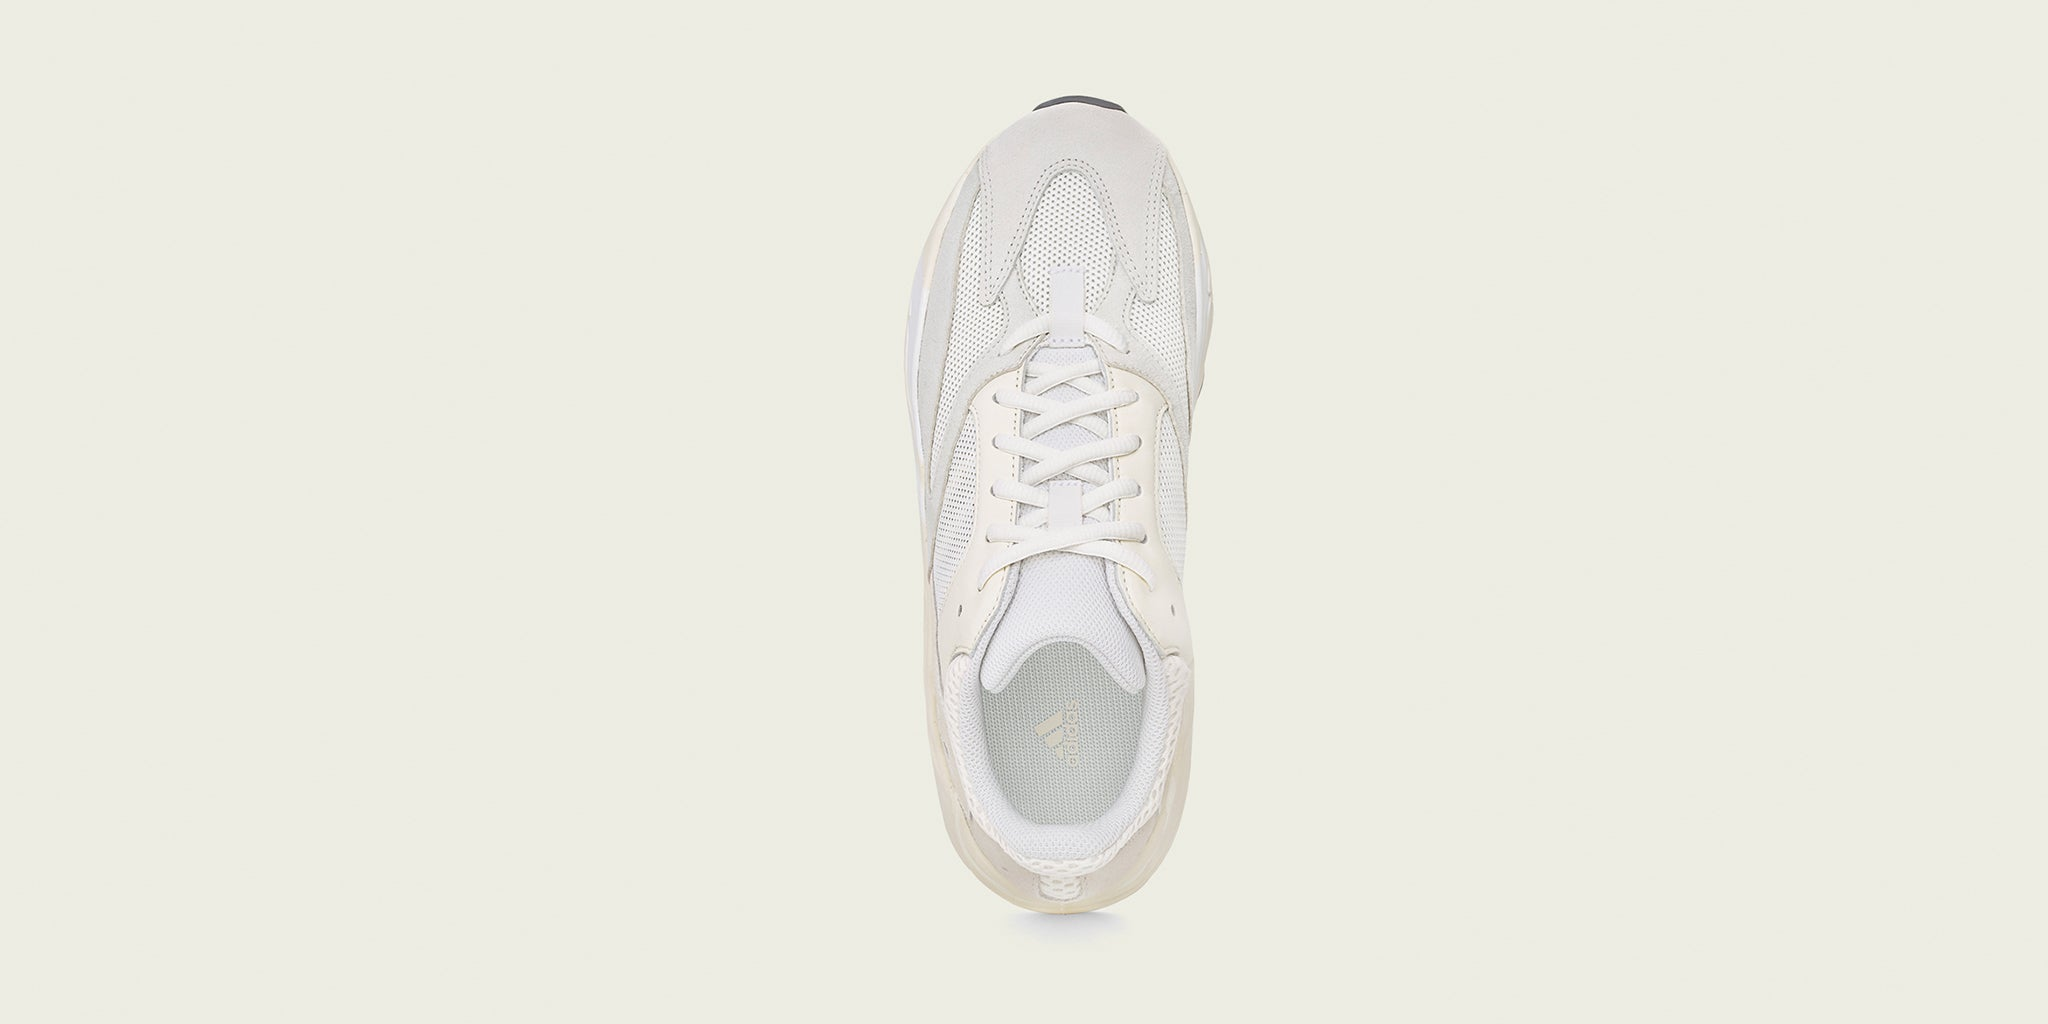 adidas x KANYE WEST Announce The YEEZY BOOST 700 Analog